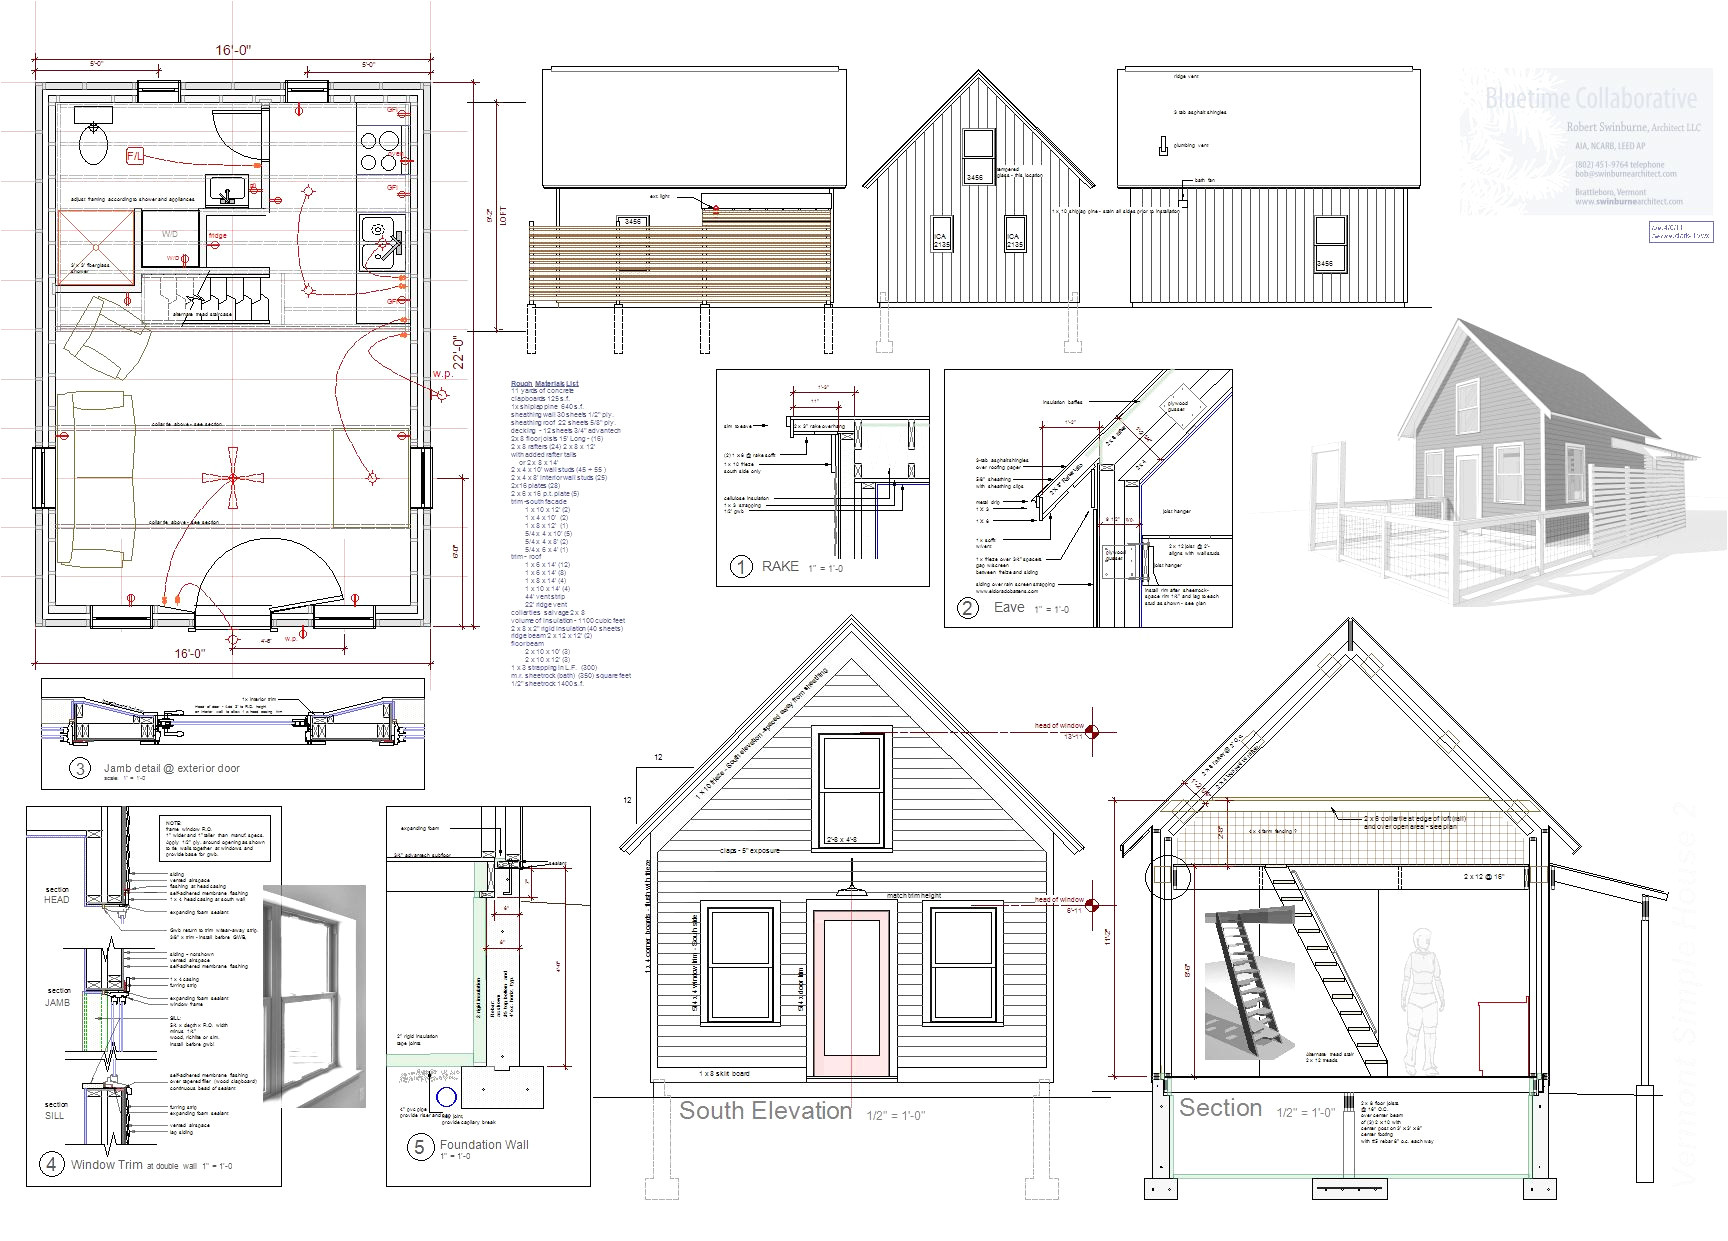 home construction plans free download awesome 60 inspirational s new home construction plans